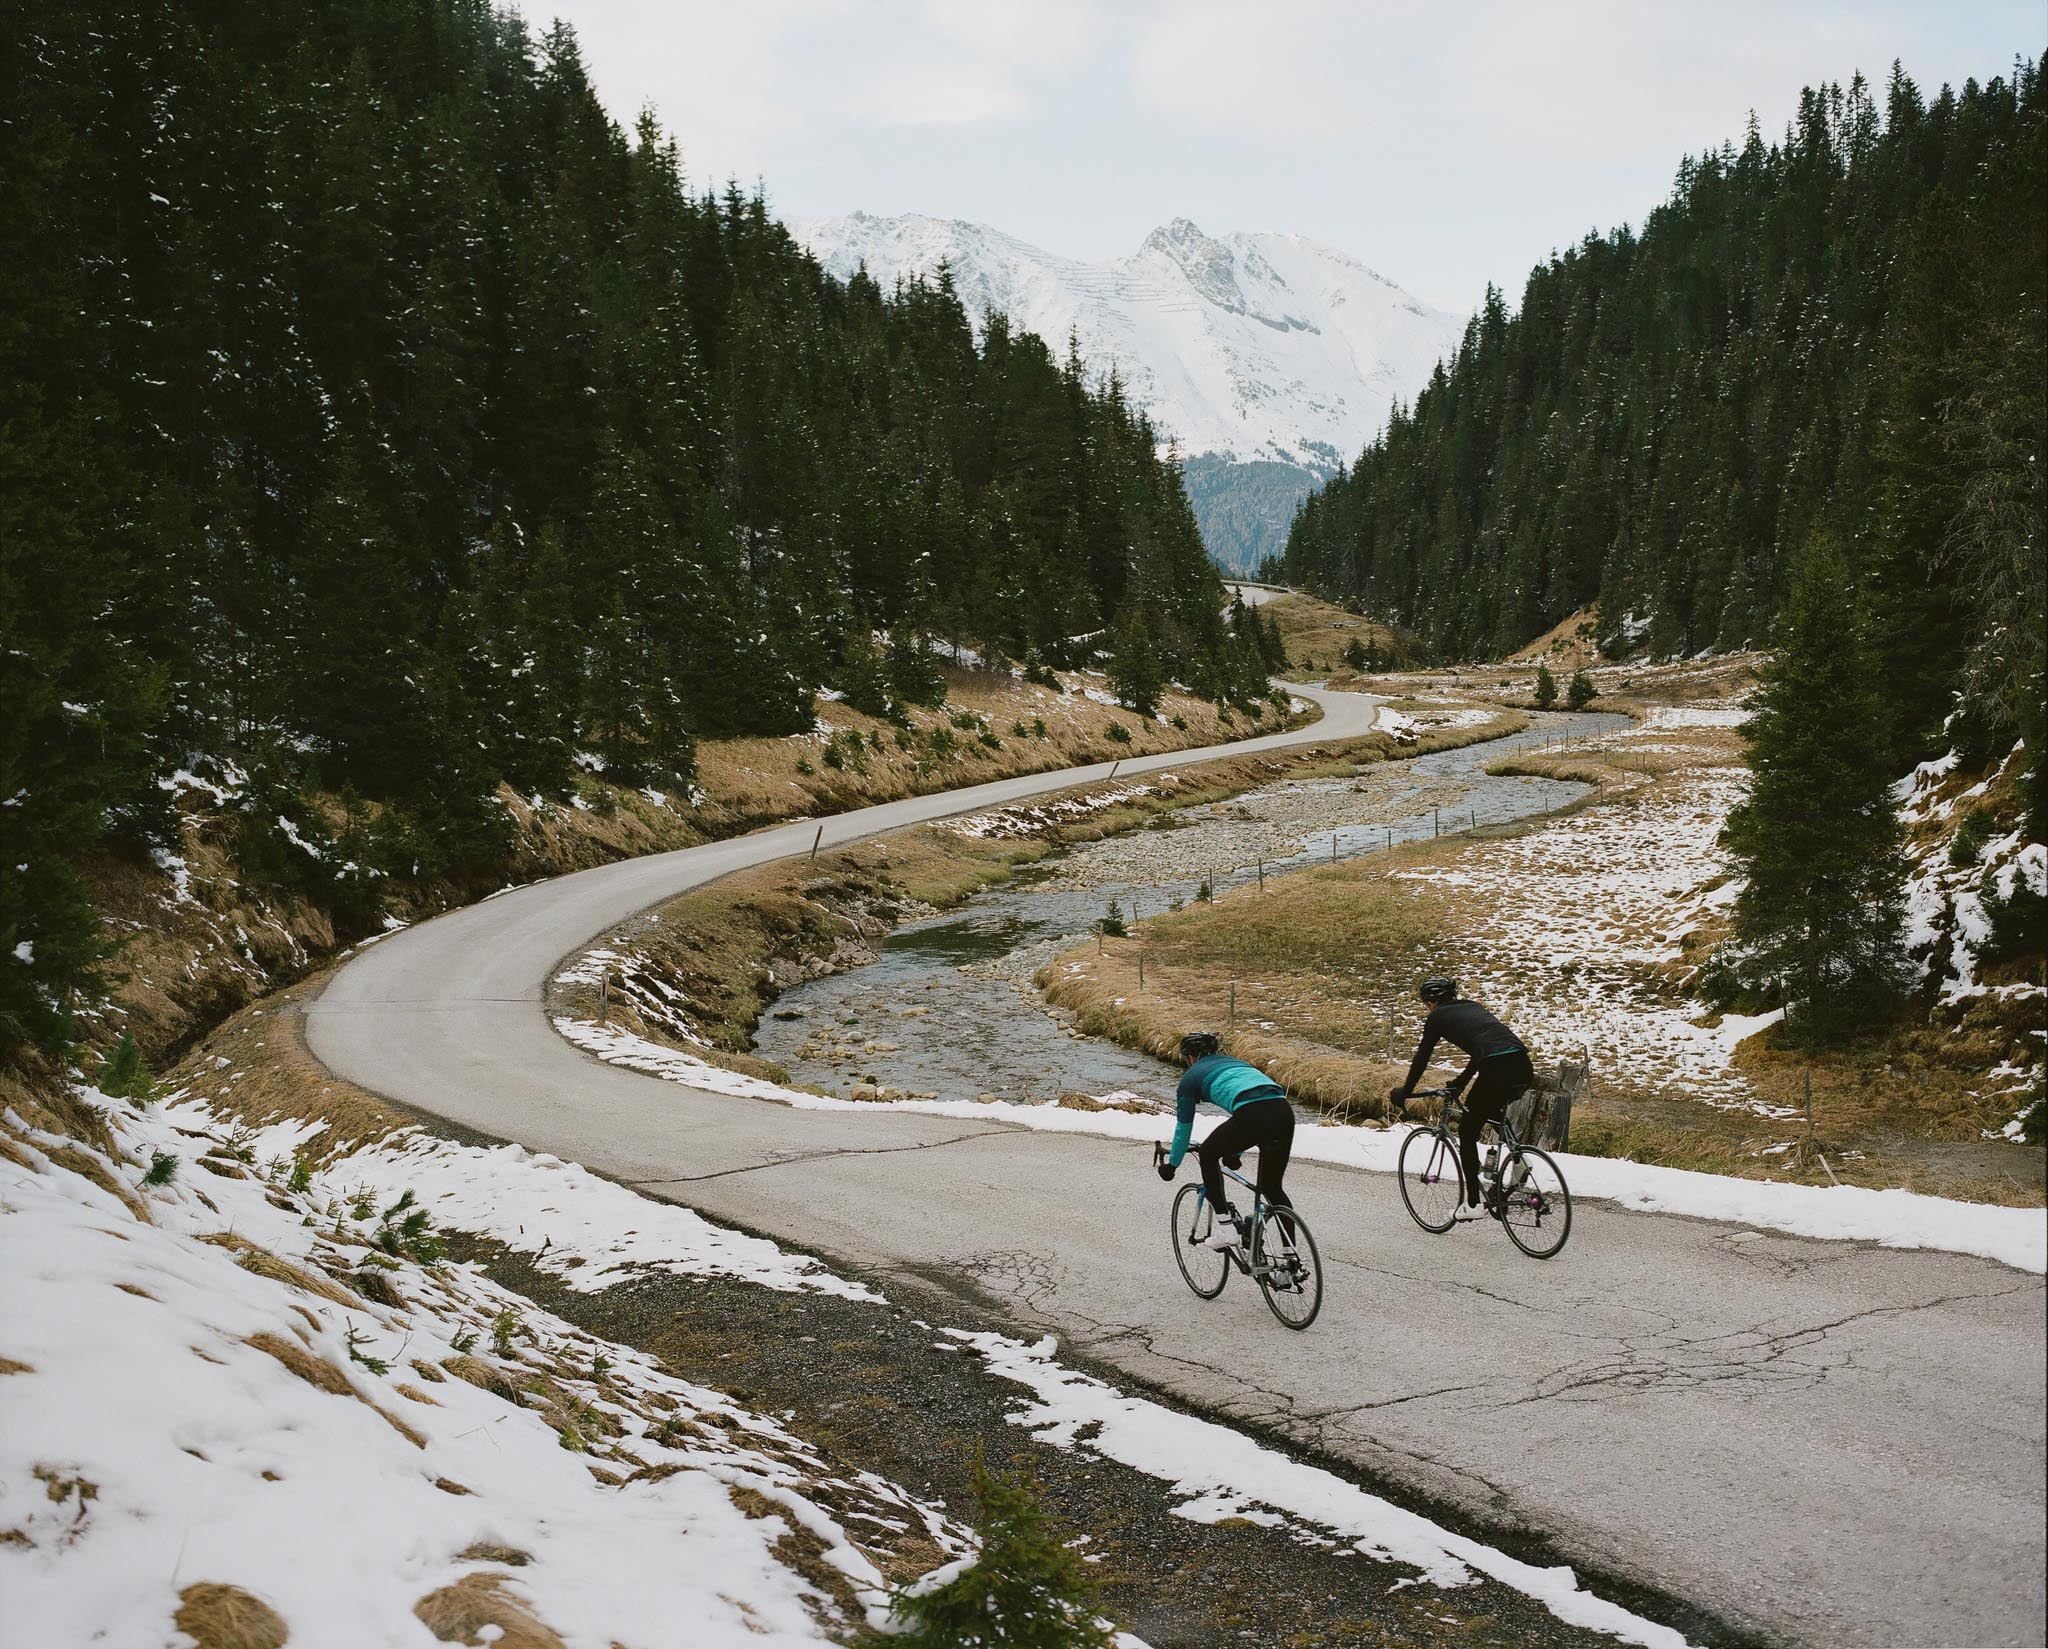 Rapha_2017_Tirol_George_Marshall_hires_036.jpg